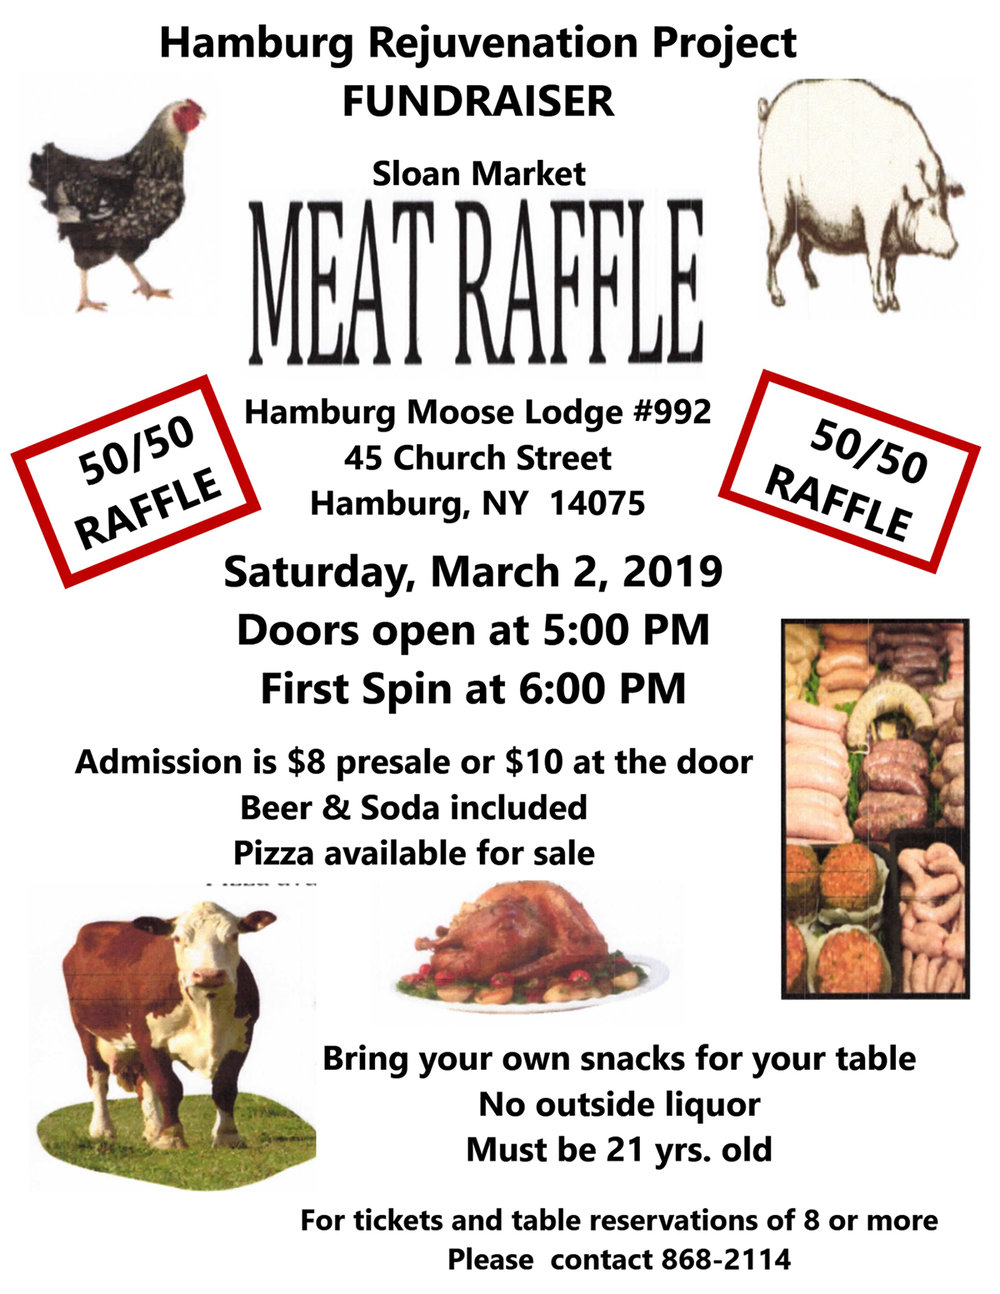 HamburgRejuvenationMeatRaffle3.2.2019.jpg